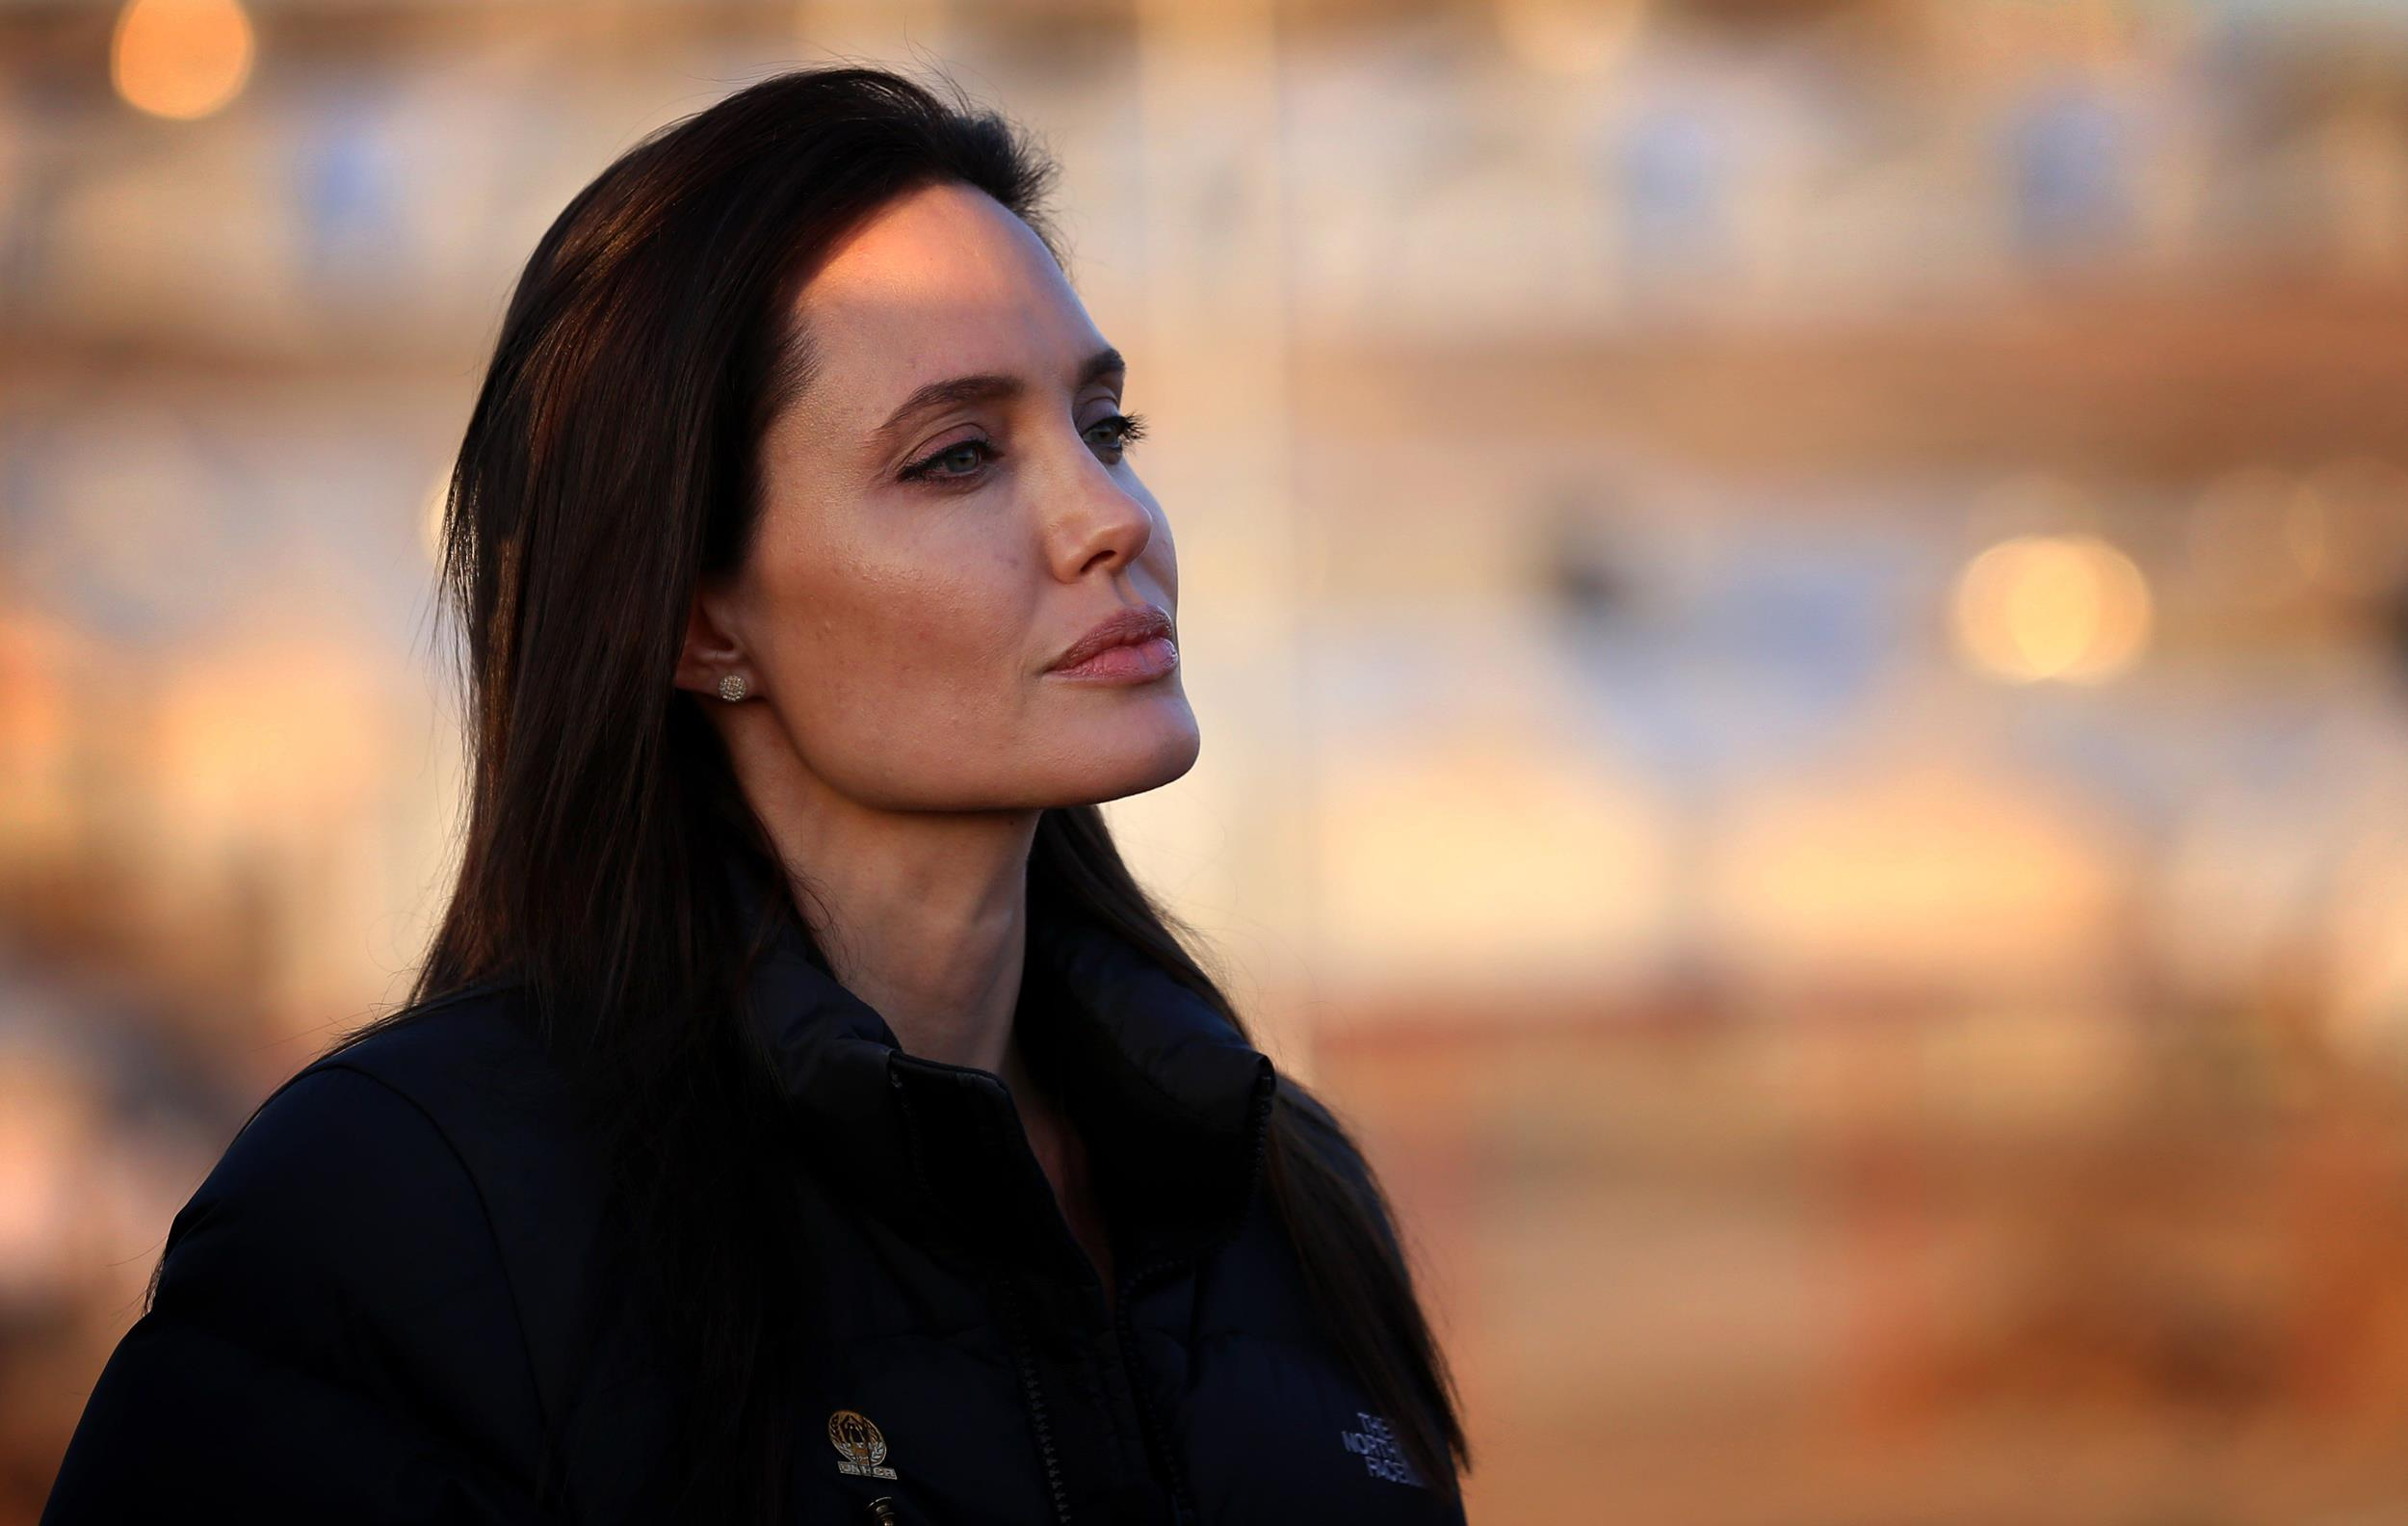 Angelina Jolie's brave op-ed—and what it means for women